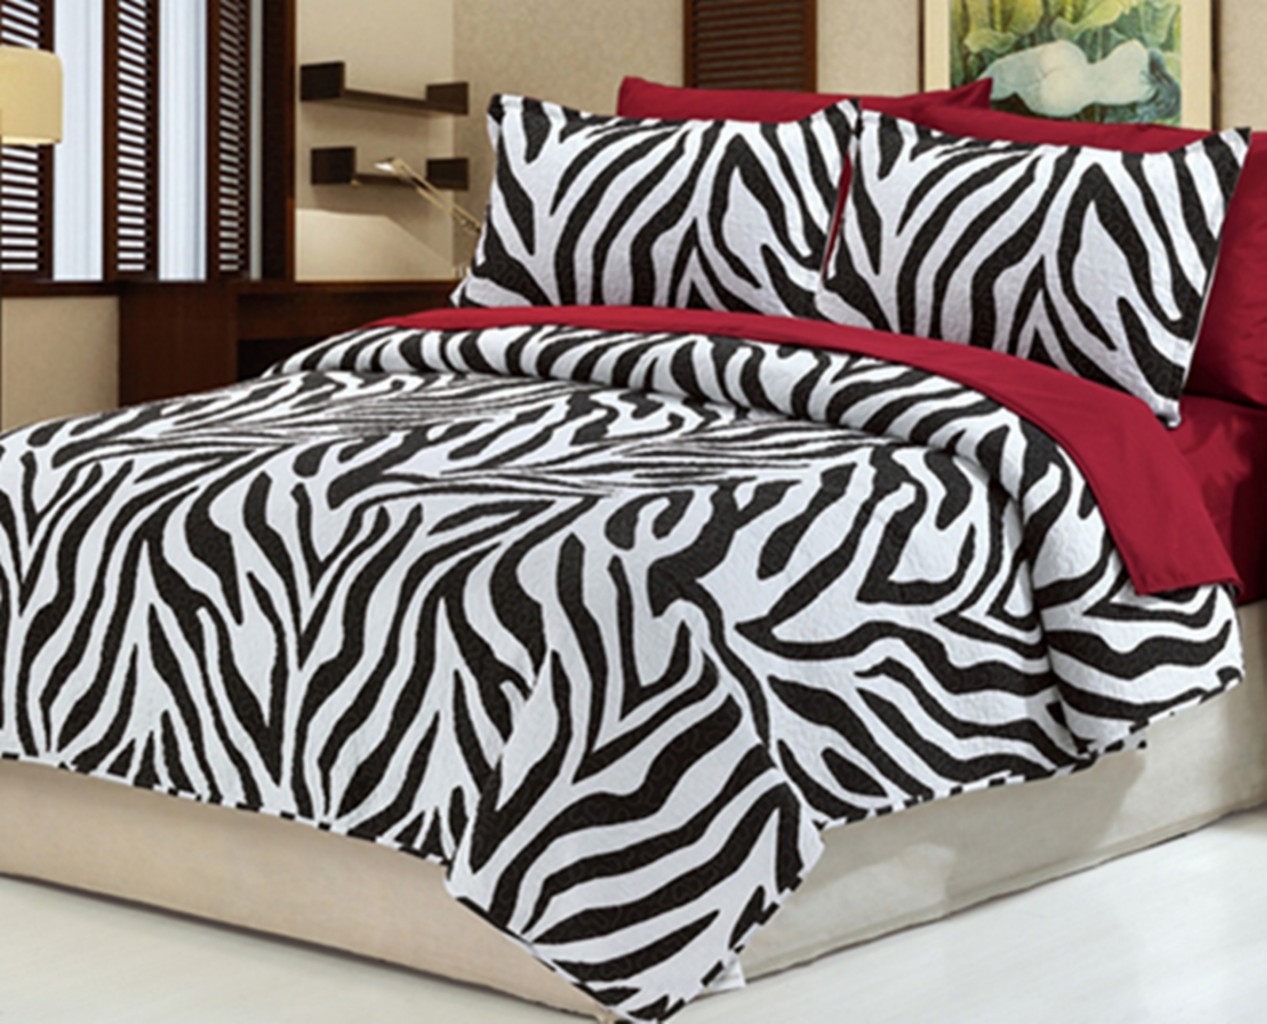 Home amp garden gt bedding gt comforters amp sets gt see more 7 pc faux fur - 7pc Zebra Bedspread